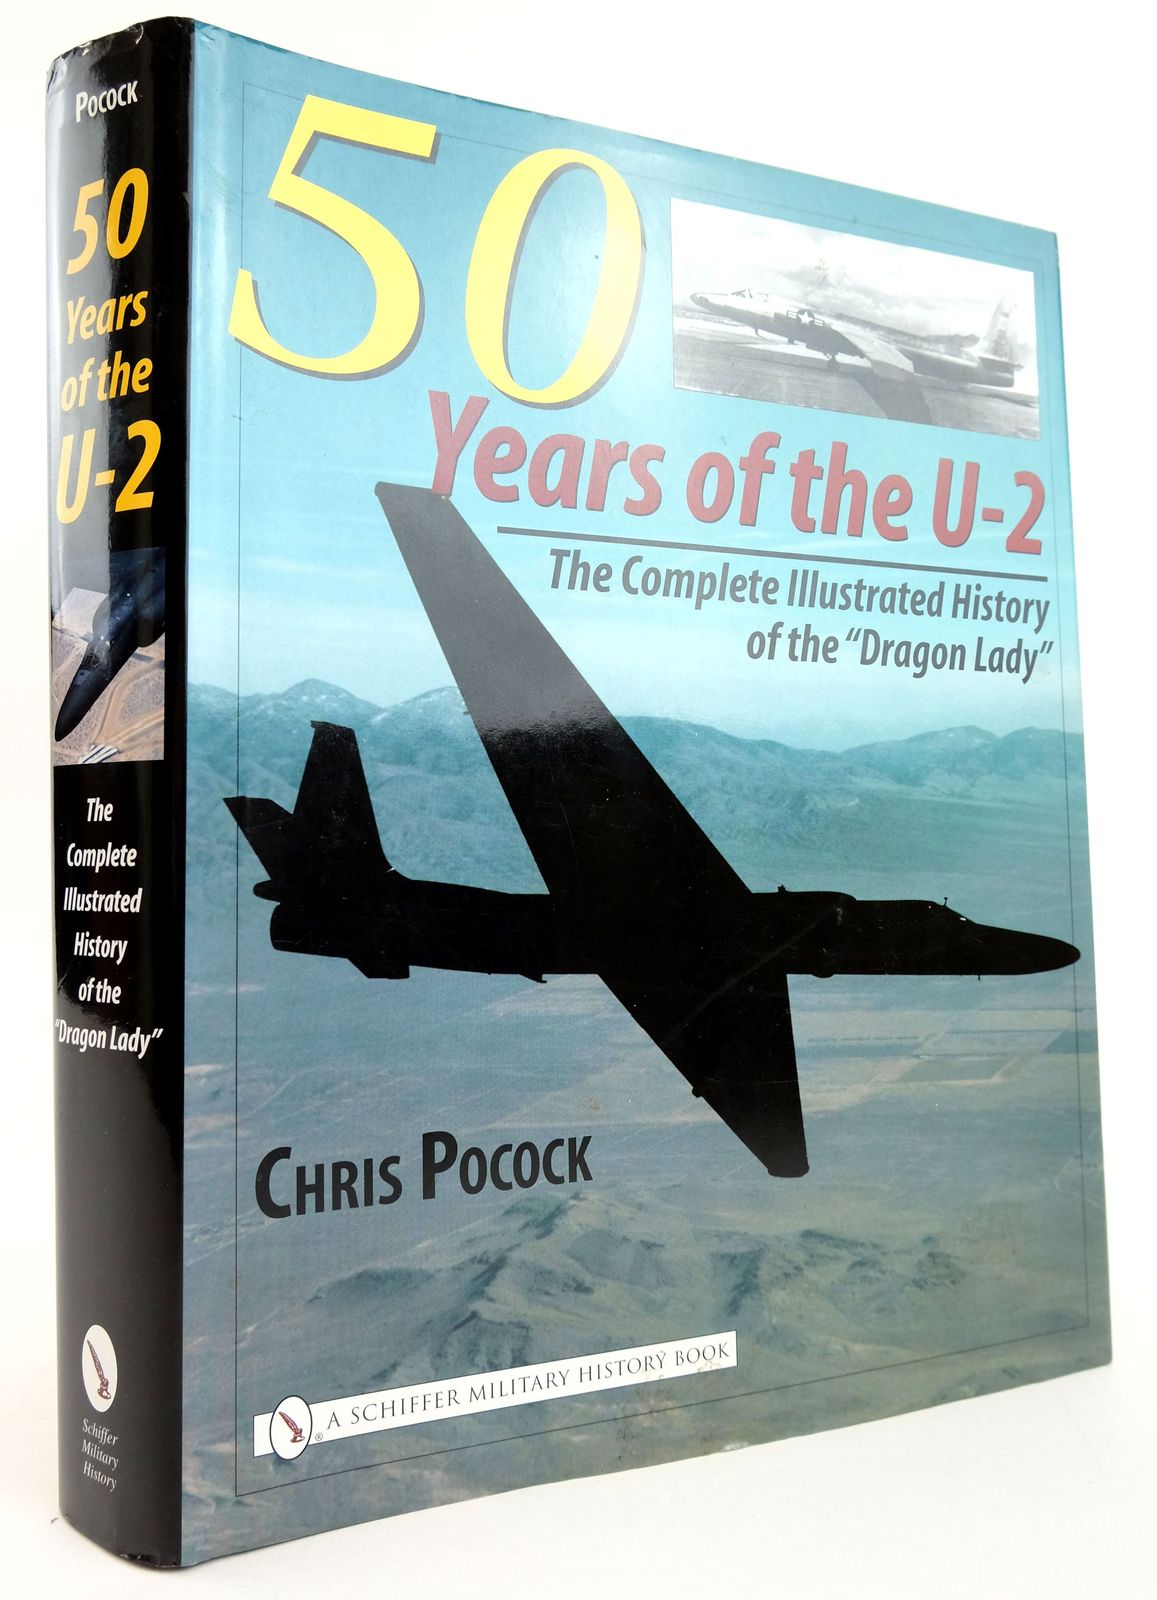 """Photo of 50 YEARS OF THE U-2: THE COMPLETE ILLUSTRATED HISTORY OF THE """"DRAGON LADY"""" written by Pocock, Chris published by Schiffer Military History (STOCK CODE: 1820076)  for sale by Stella & Rose's Books"""